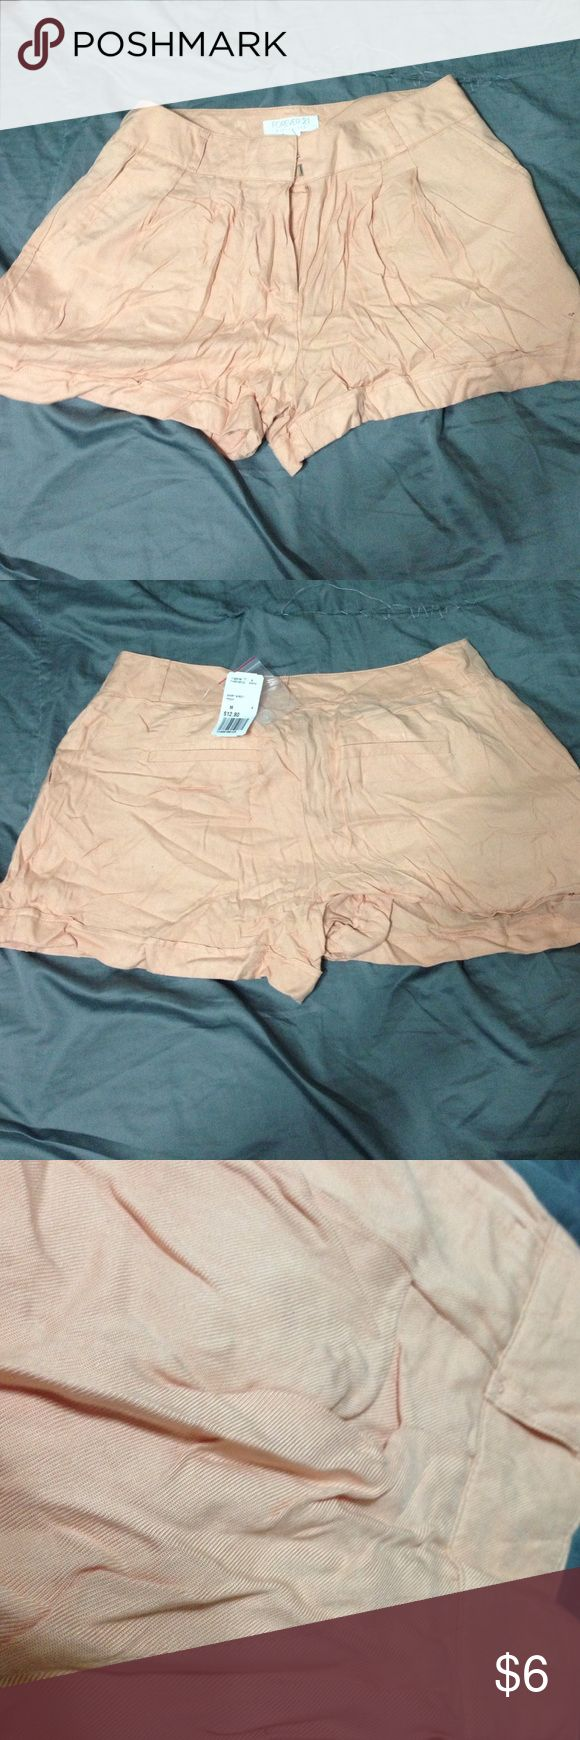 Peach shorts forever 21 Great condition. I don't have an iron so they're wrinkly right now but they're brand new! Forever 21 Shorts